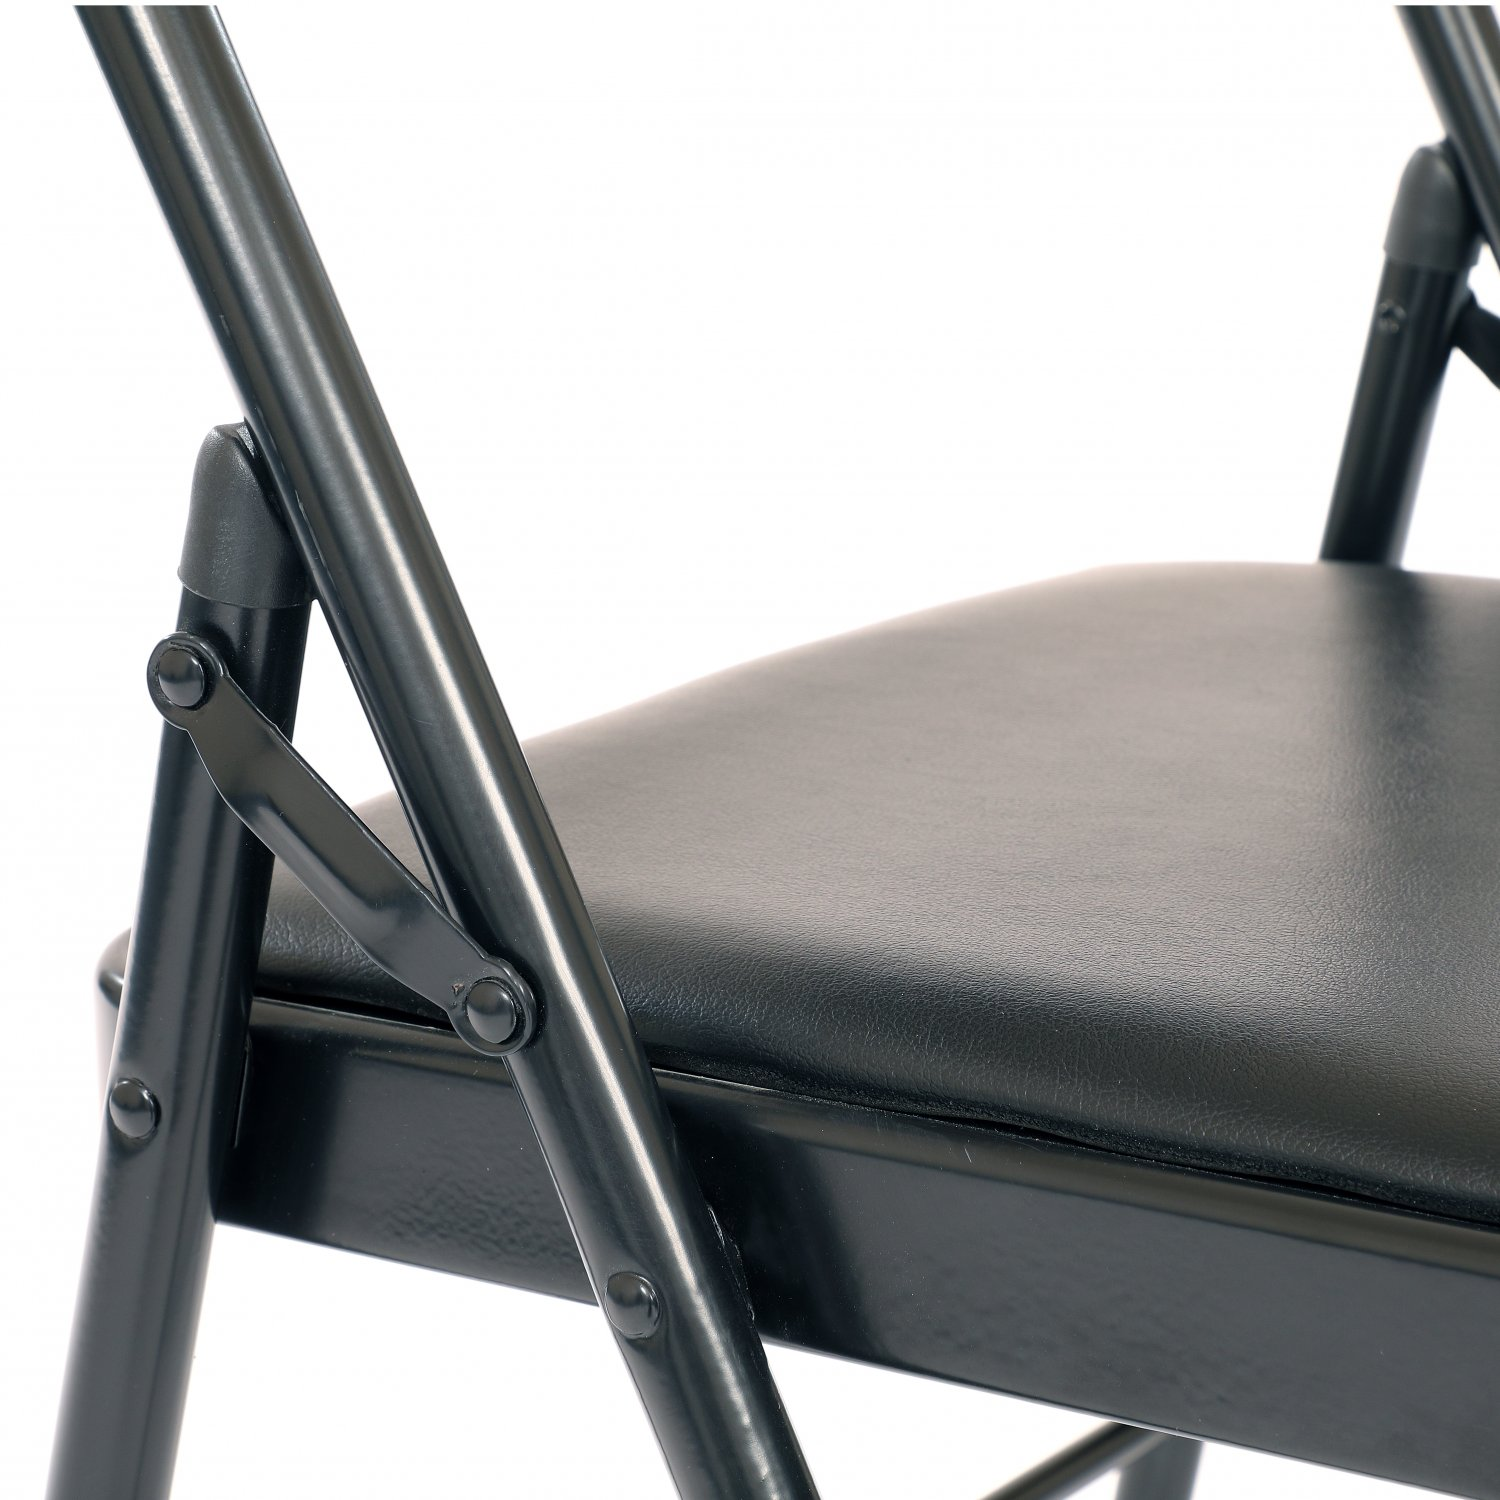 Image of: Heavy Duty Padded Folding Metal Desk Office Chair Seat 19 99 Oypla Stocking The Very Best In Toys Electrical Furniture Homeware Garden Gifts And Much More